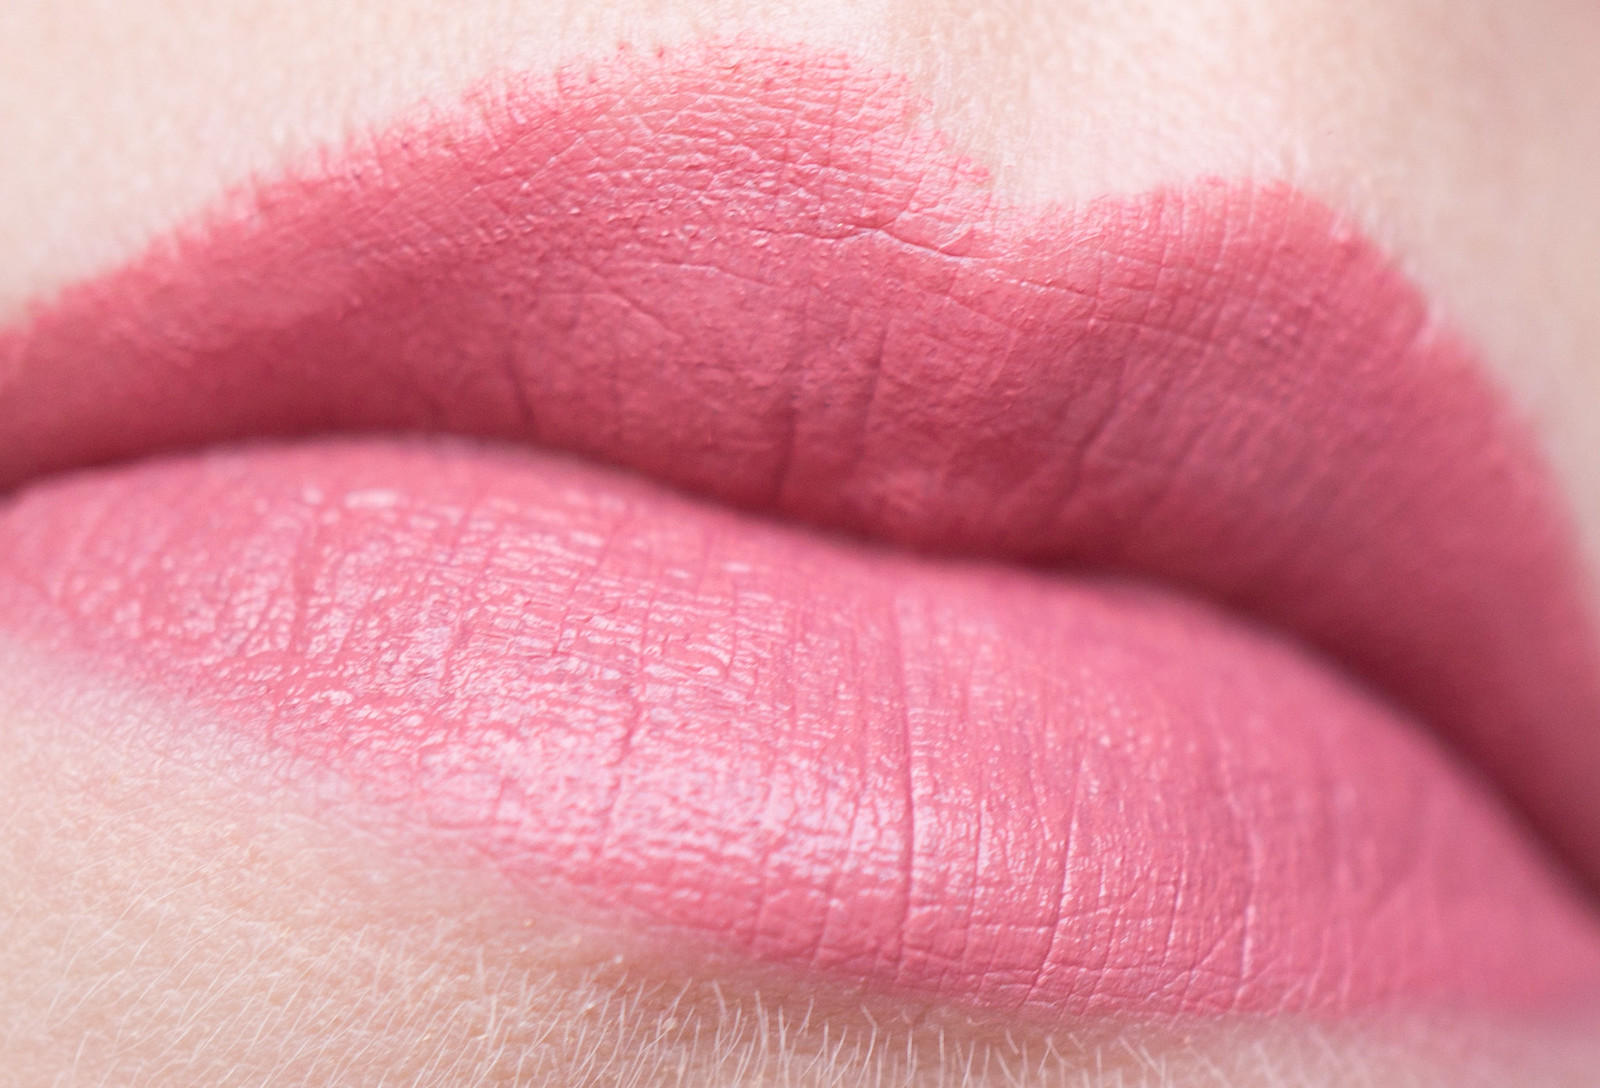 Maybelline Color Sensational Matte 987 Smoky Rose